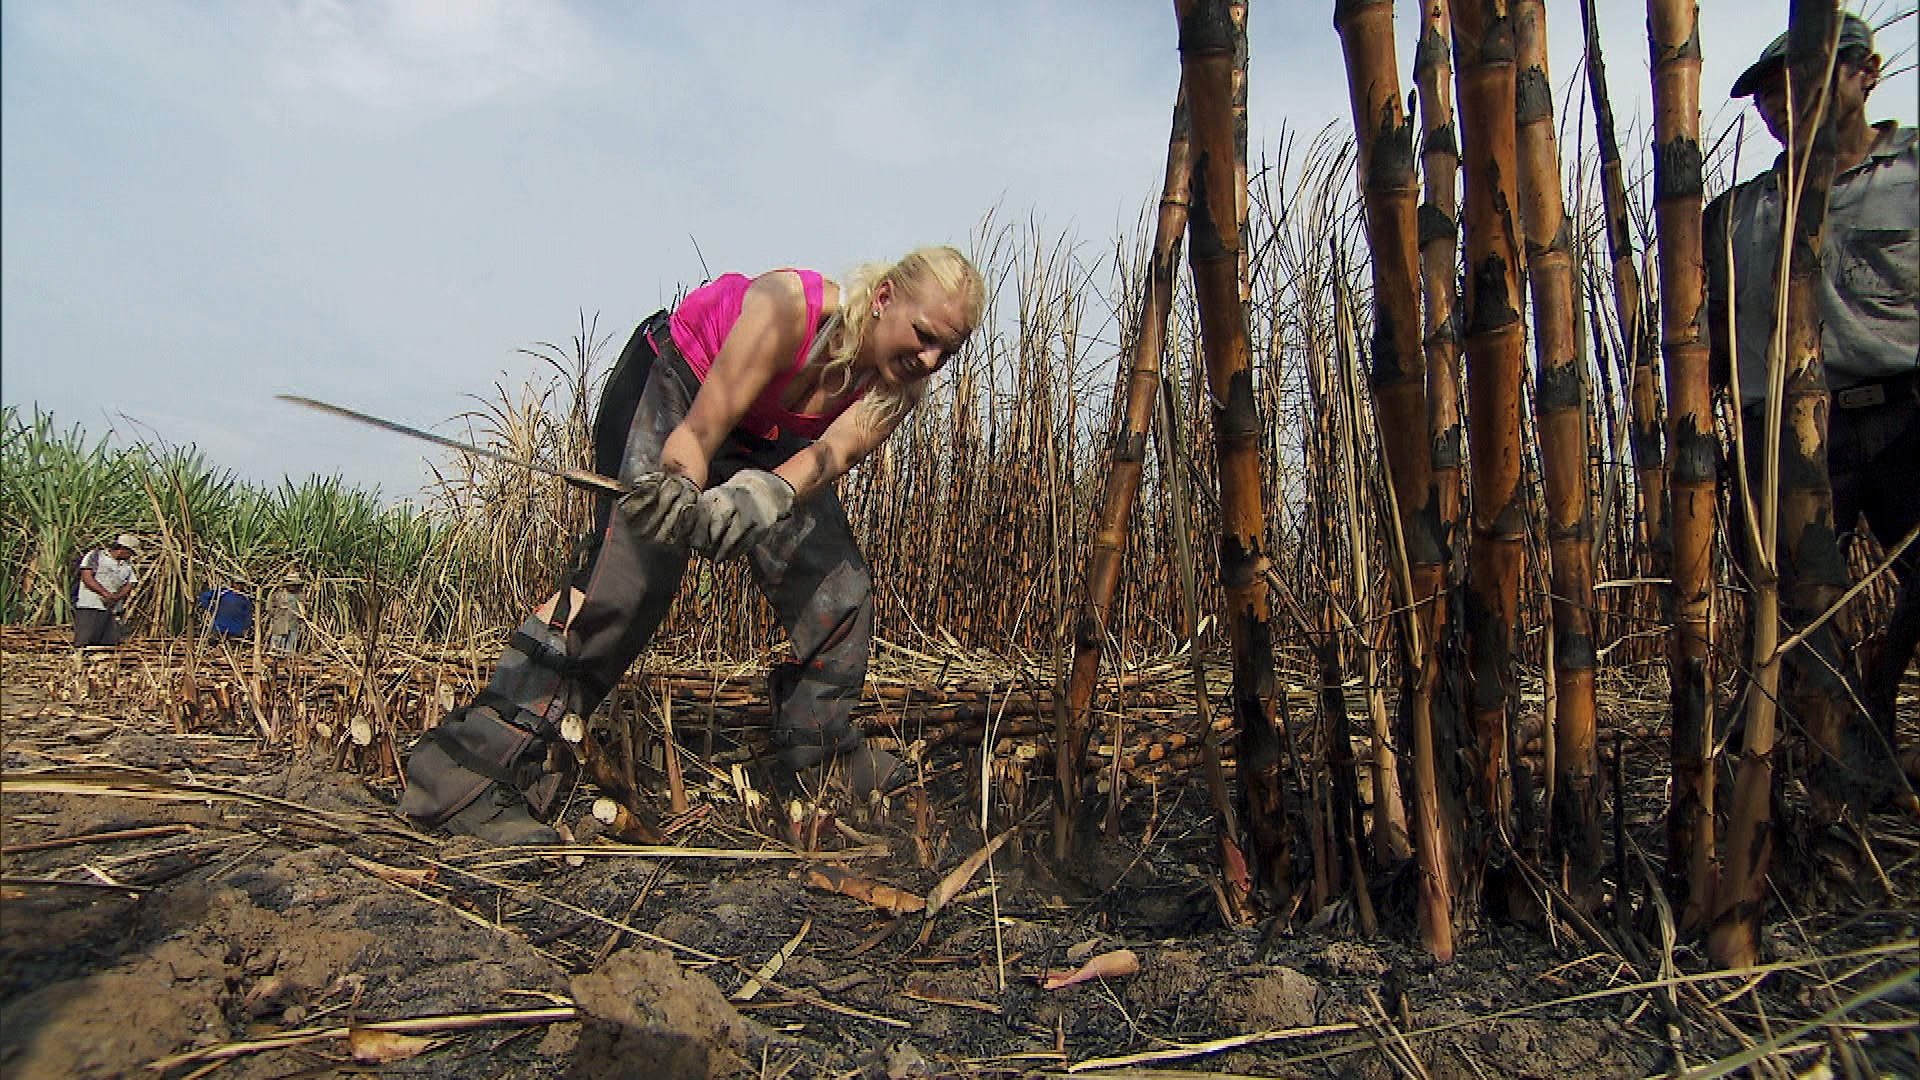 Cutting down the sugar cane